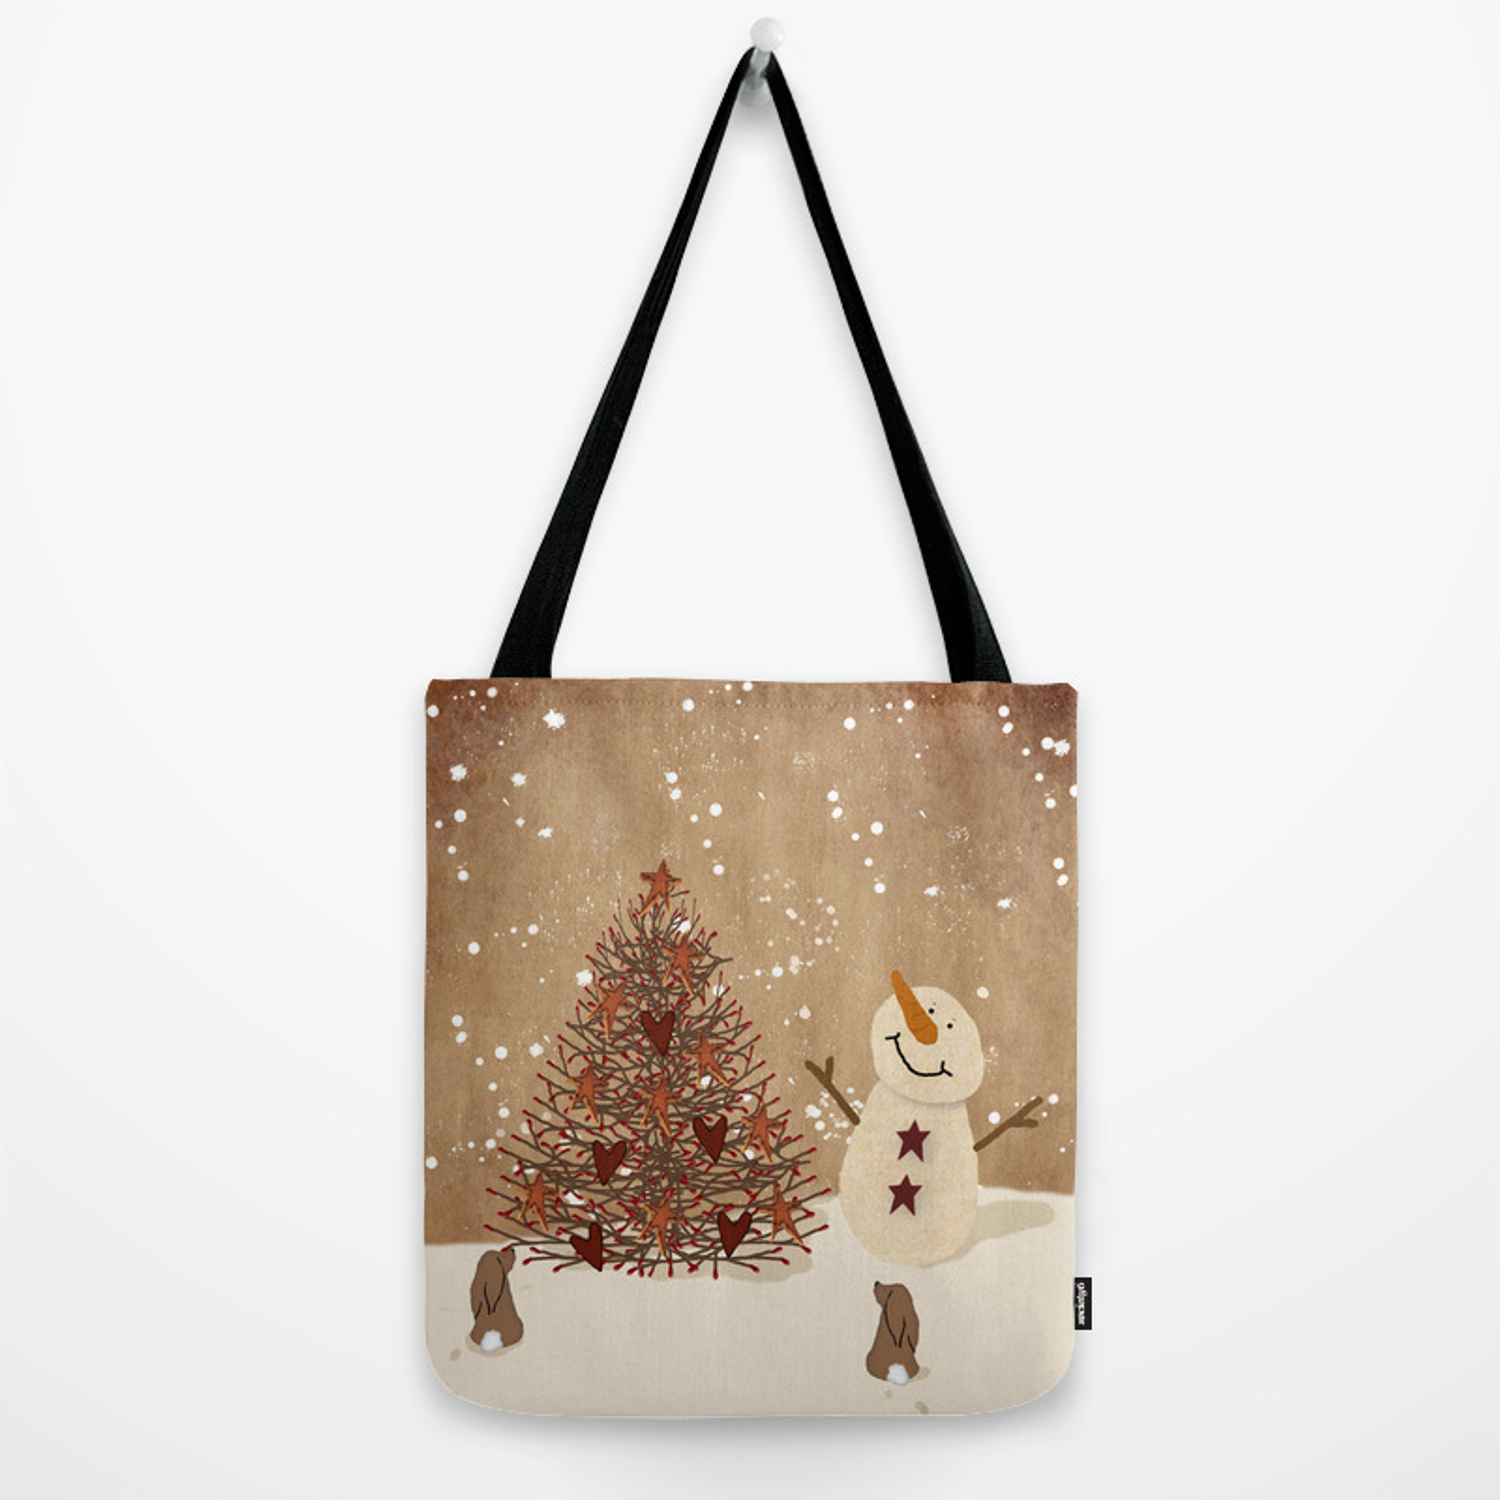 Christmas Tree Bags.Primitive Country Christmas Tree Tote Bag